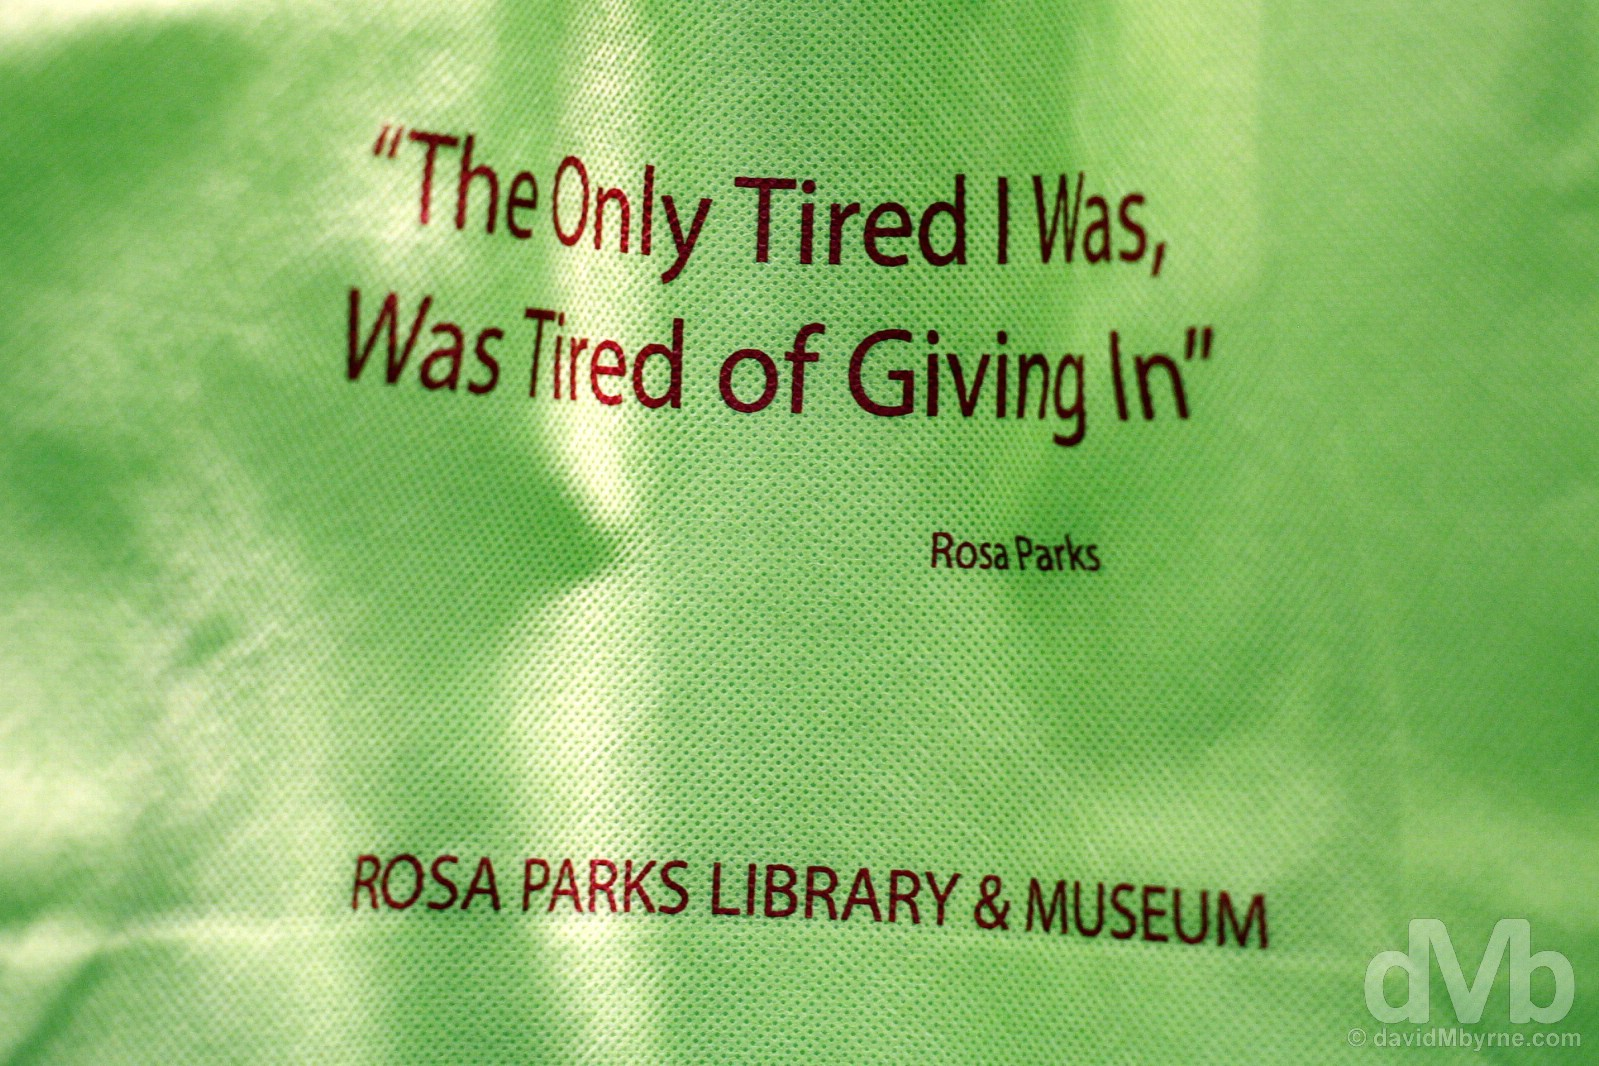 In the gift shop of the Rosa Parks Library & Museum in Montgomery, Alabama, USA. September 21, 2016.